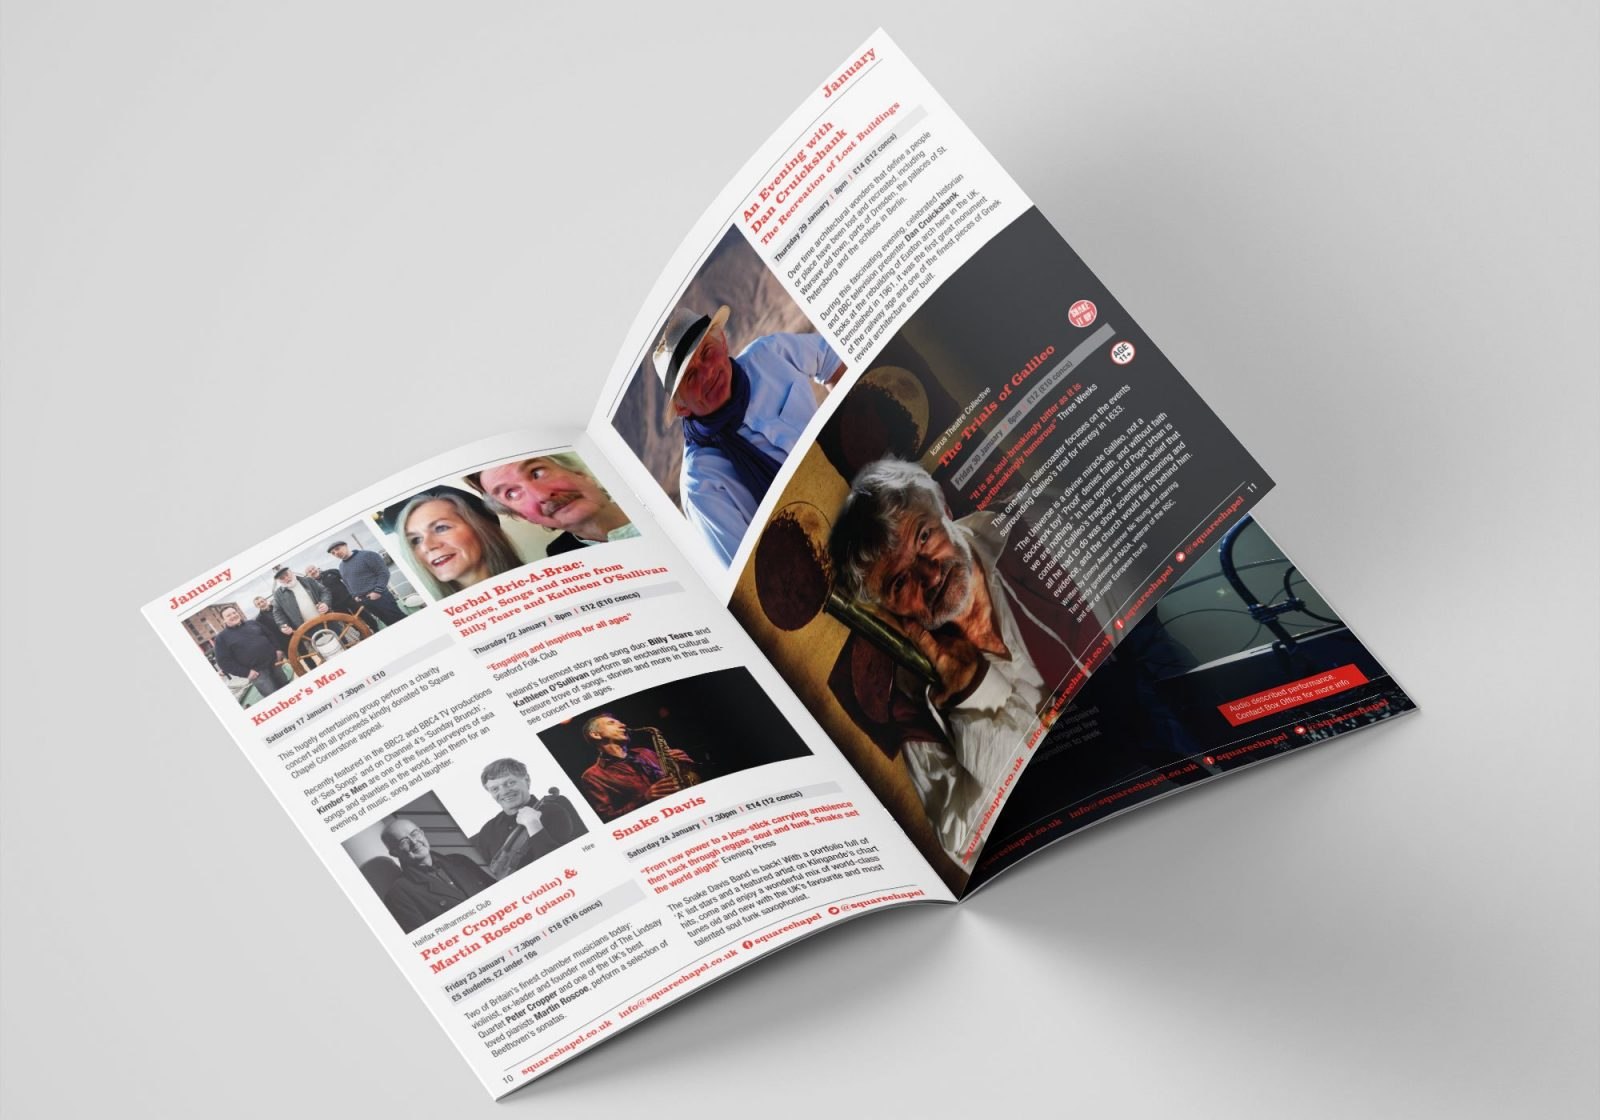 A brochure design for Square Chapel centre for the Arts in Halifax showing the inside pages